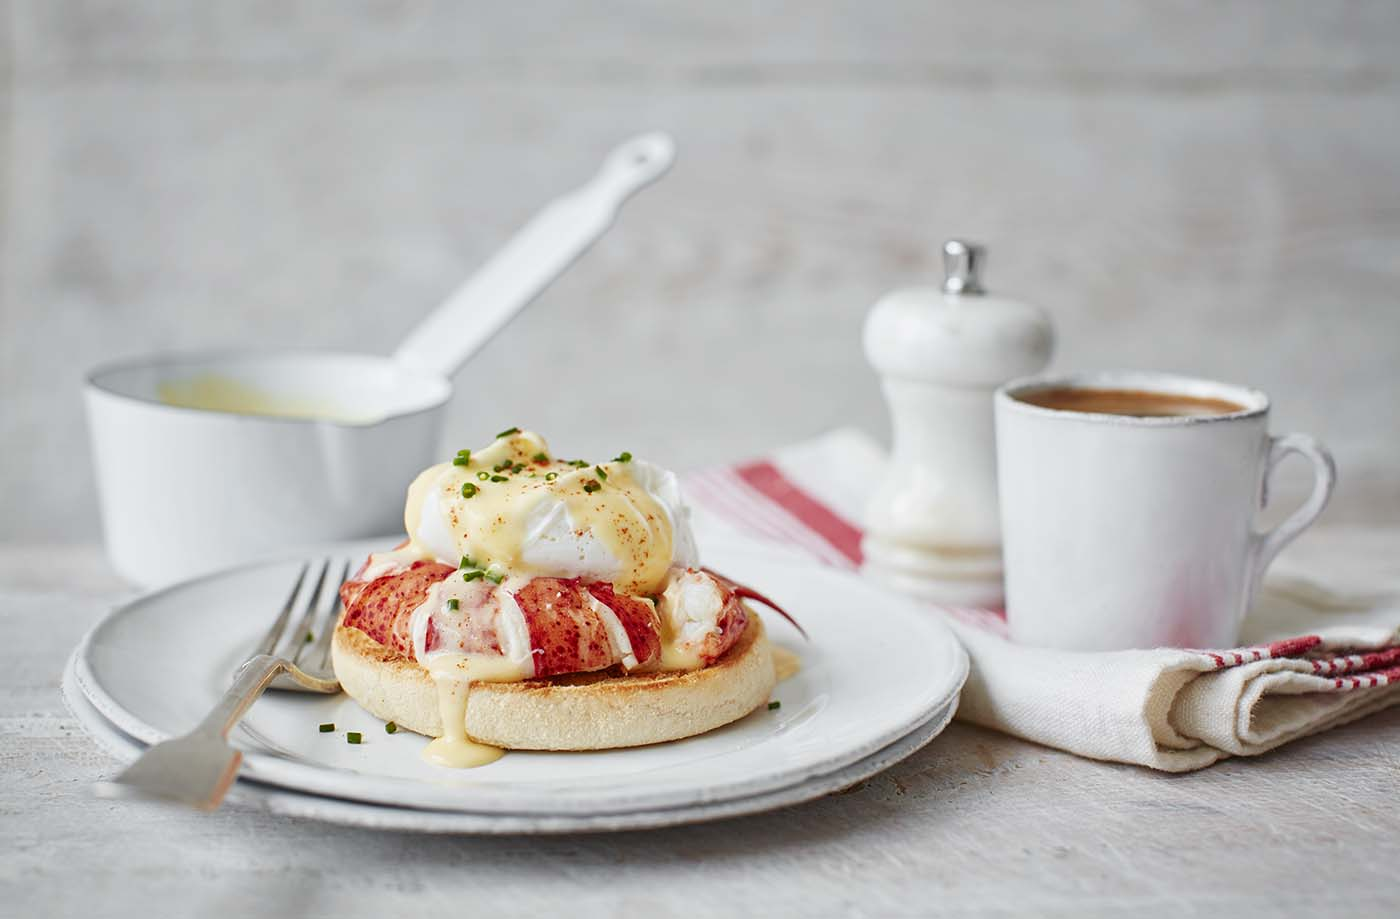 Classic eggs Benedict has been given a gourmet twist with the addition of luxurious lobster. This delicious Christmas brunch recipe pairs meaty lobster with creamy, velvety hollandaise sauce and a perfectly poached egg